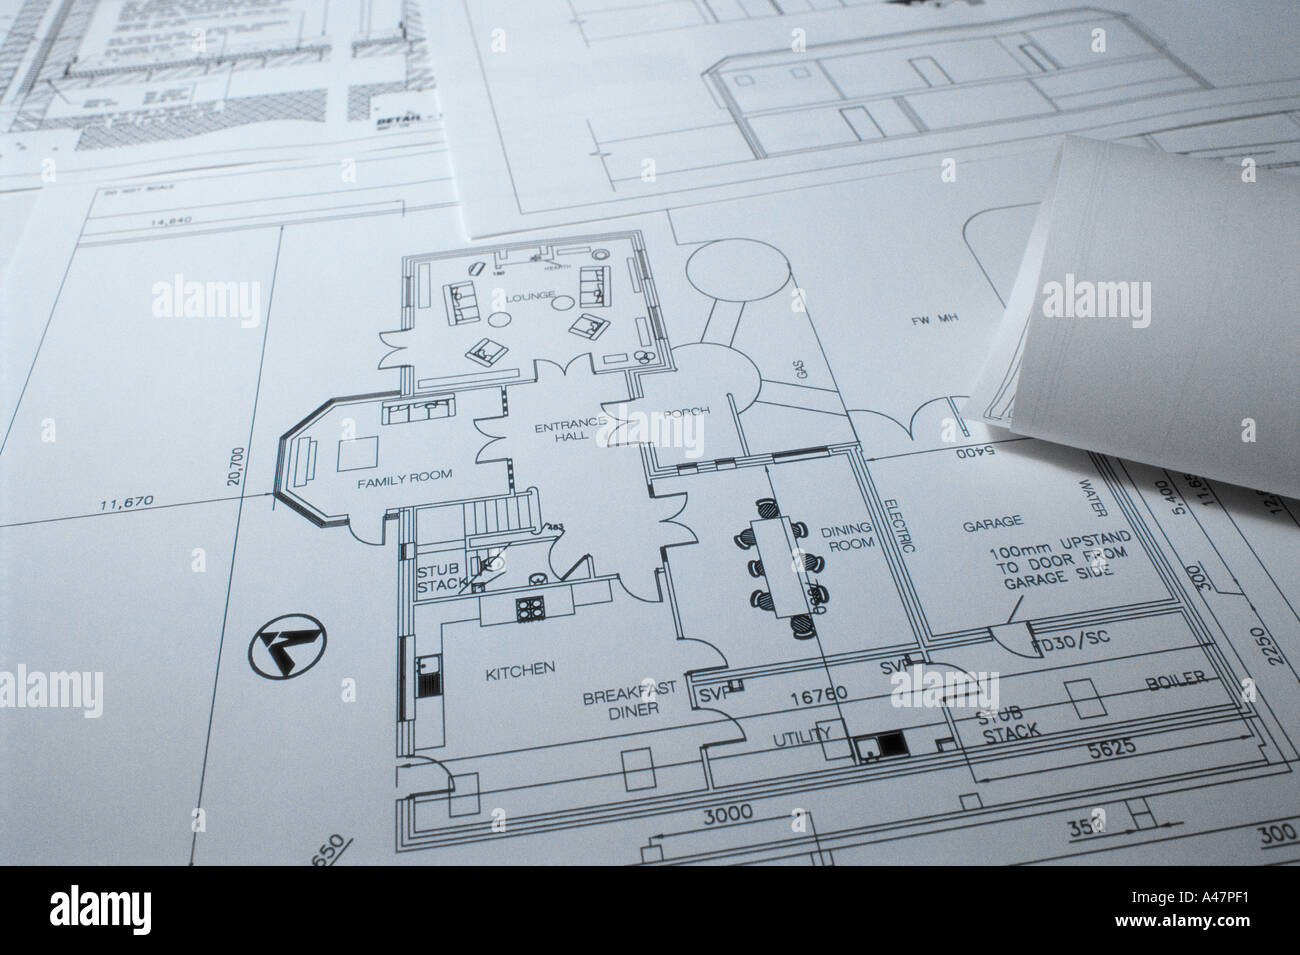 Architectural blueprints - Stock Image